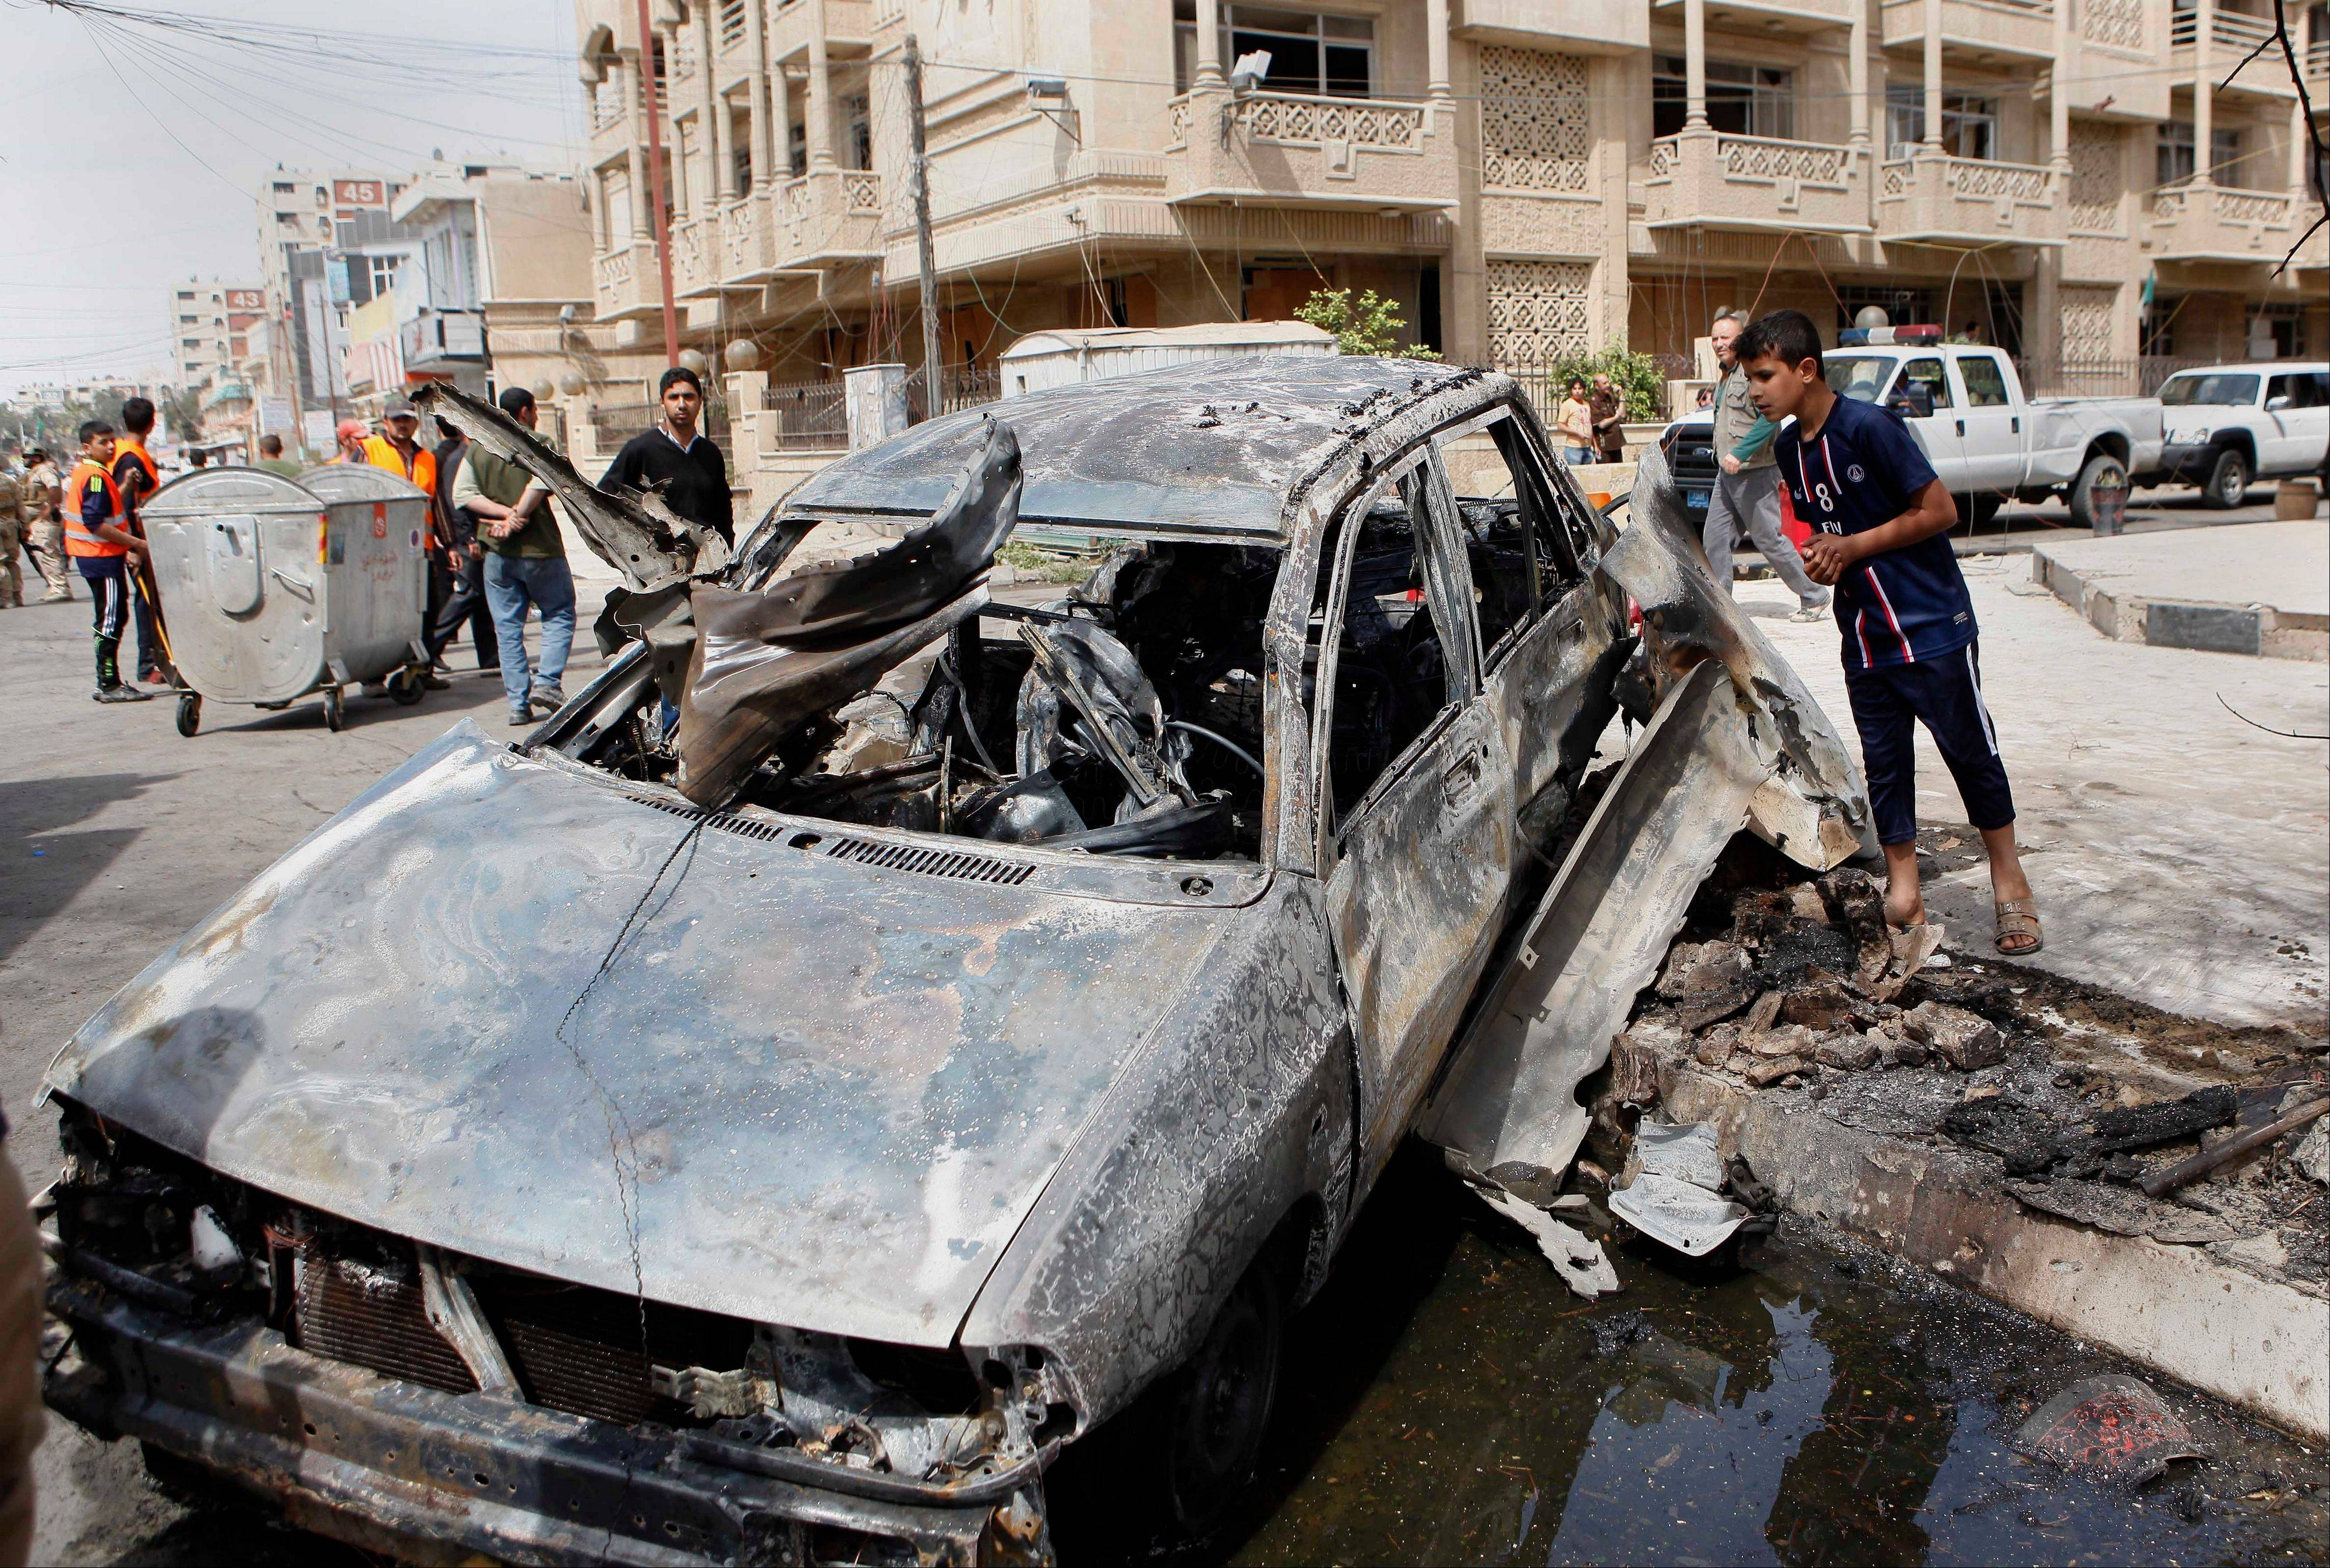 People inspect a car destroyed in a car bomb attack close to one of the main gates to the heavily-fortified Green Zone, which houses major government offices and the embassies of several countries, including the United States and Britain in Baghdad on Tuesday.